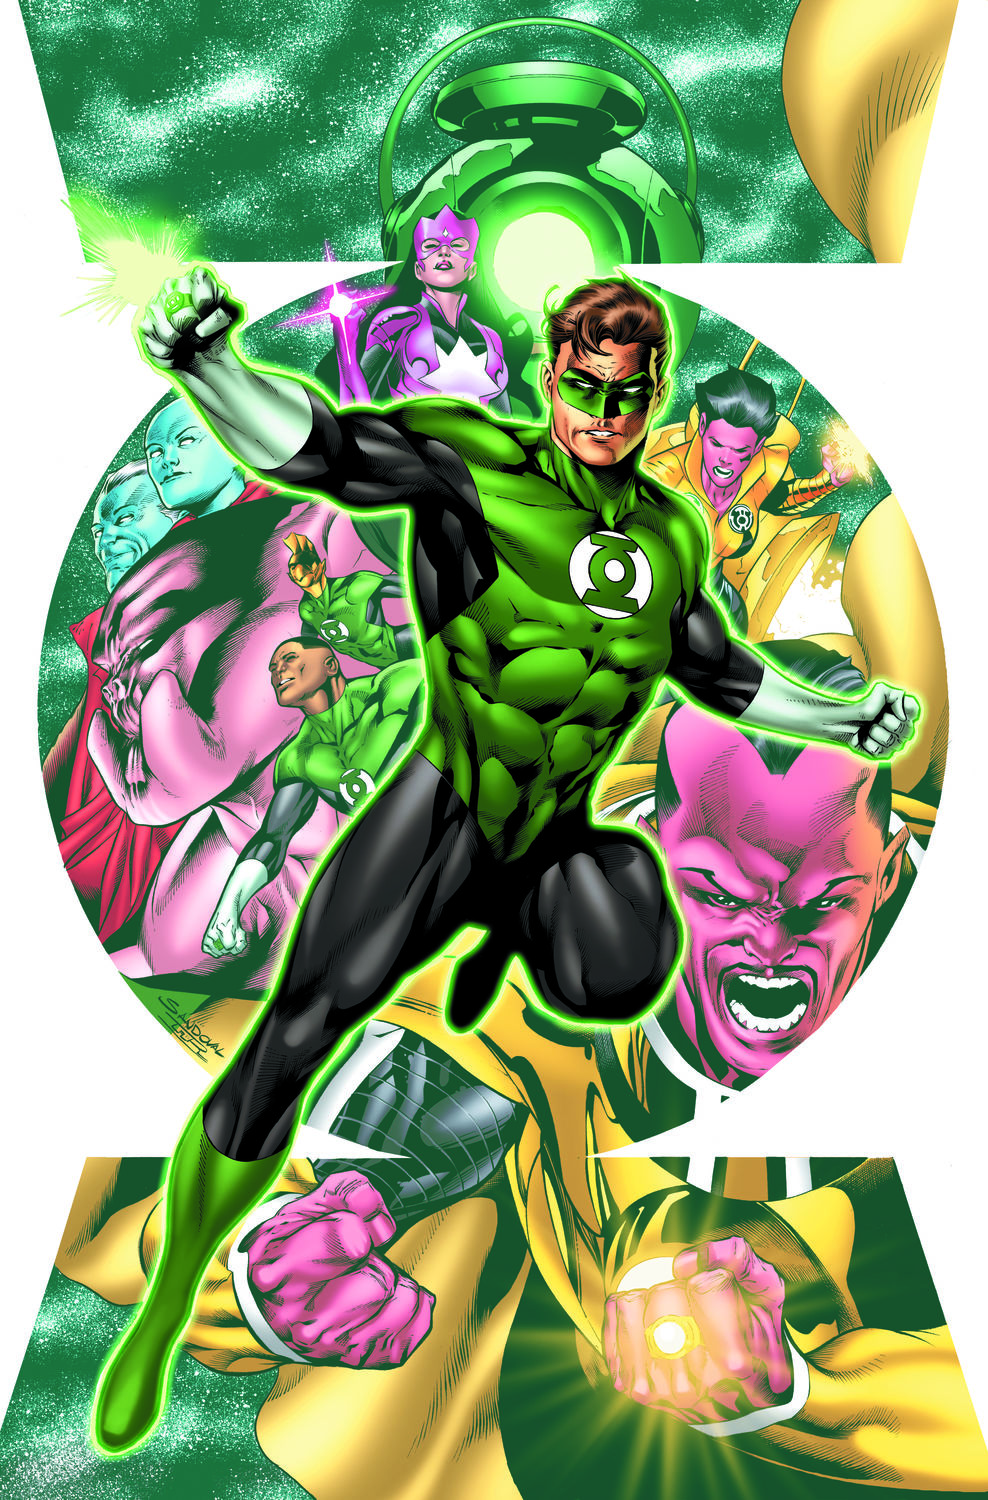 hal jordan and the green lantern corps # 1